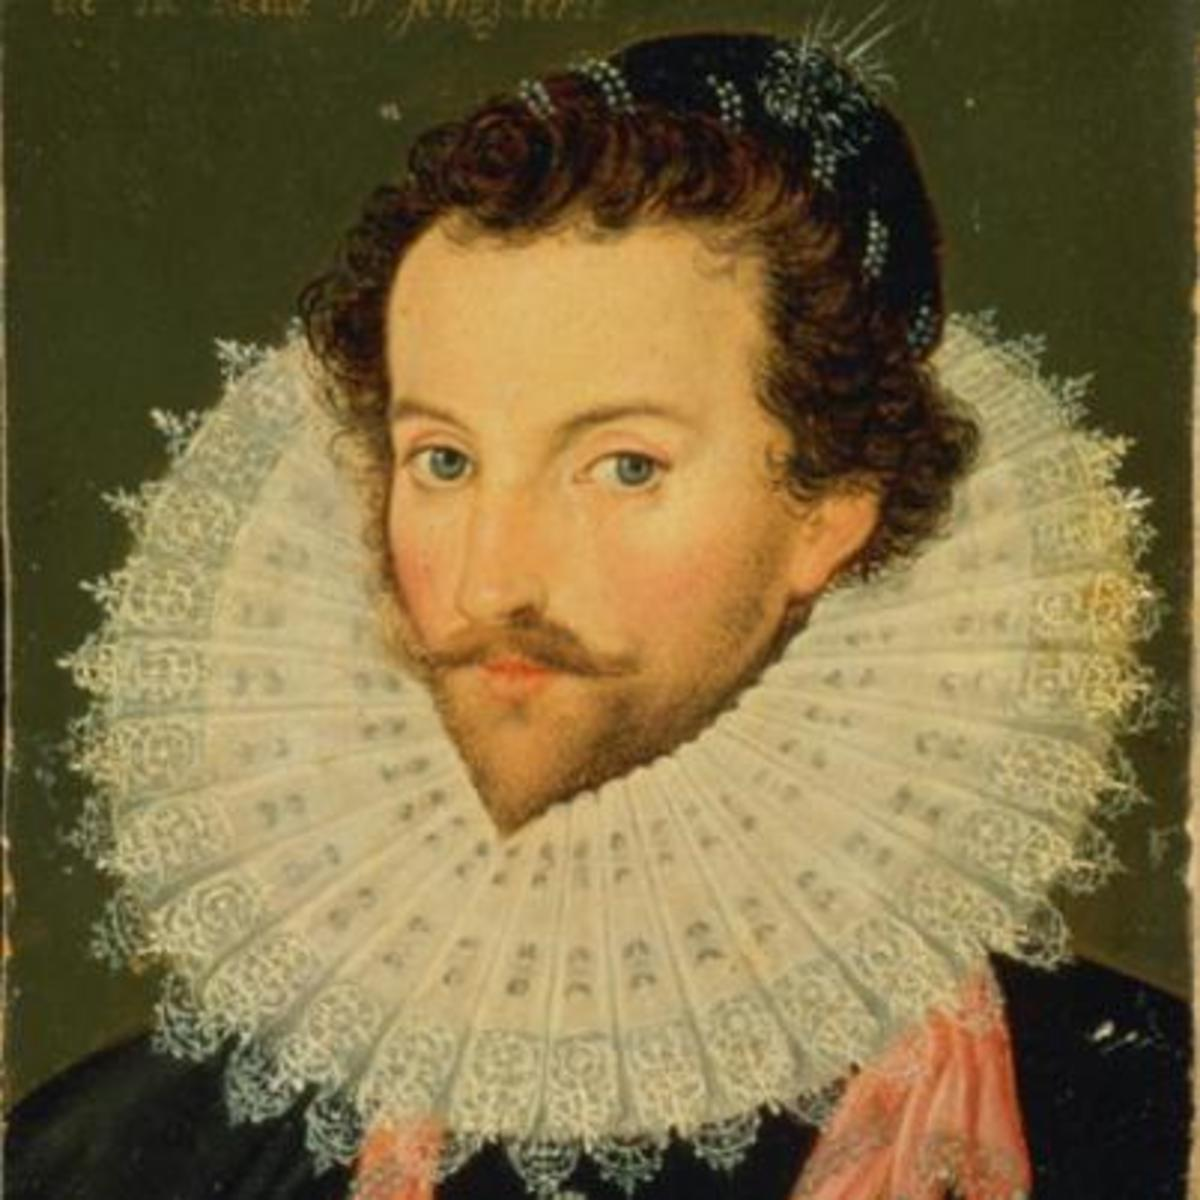 Sir Walter Raleigh Photo